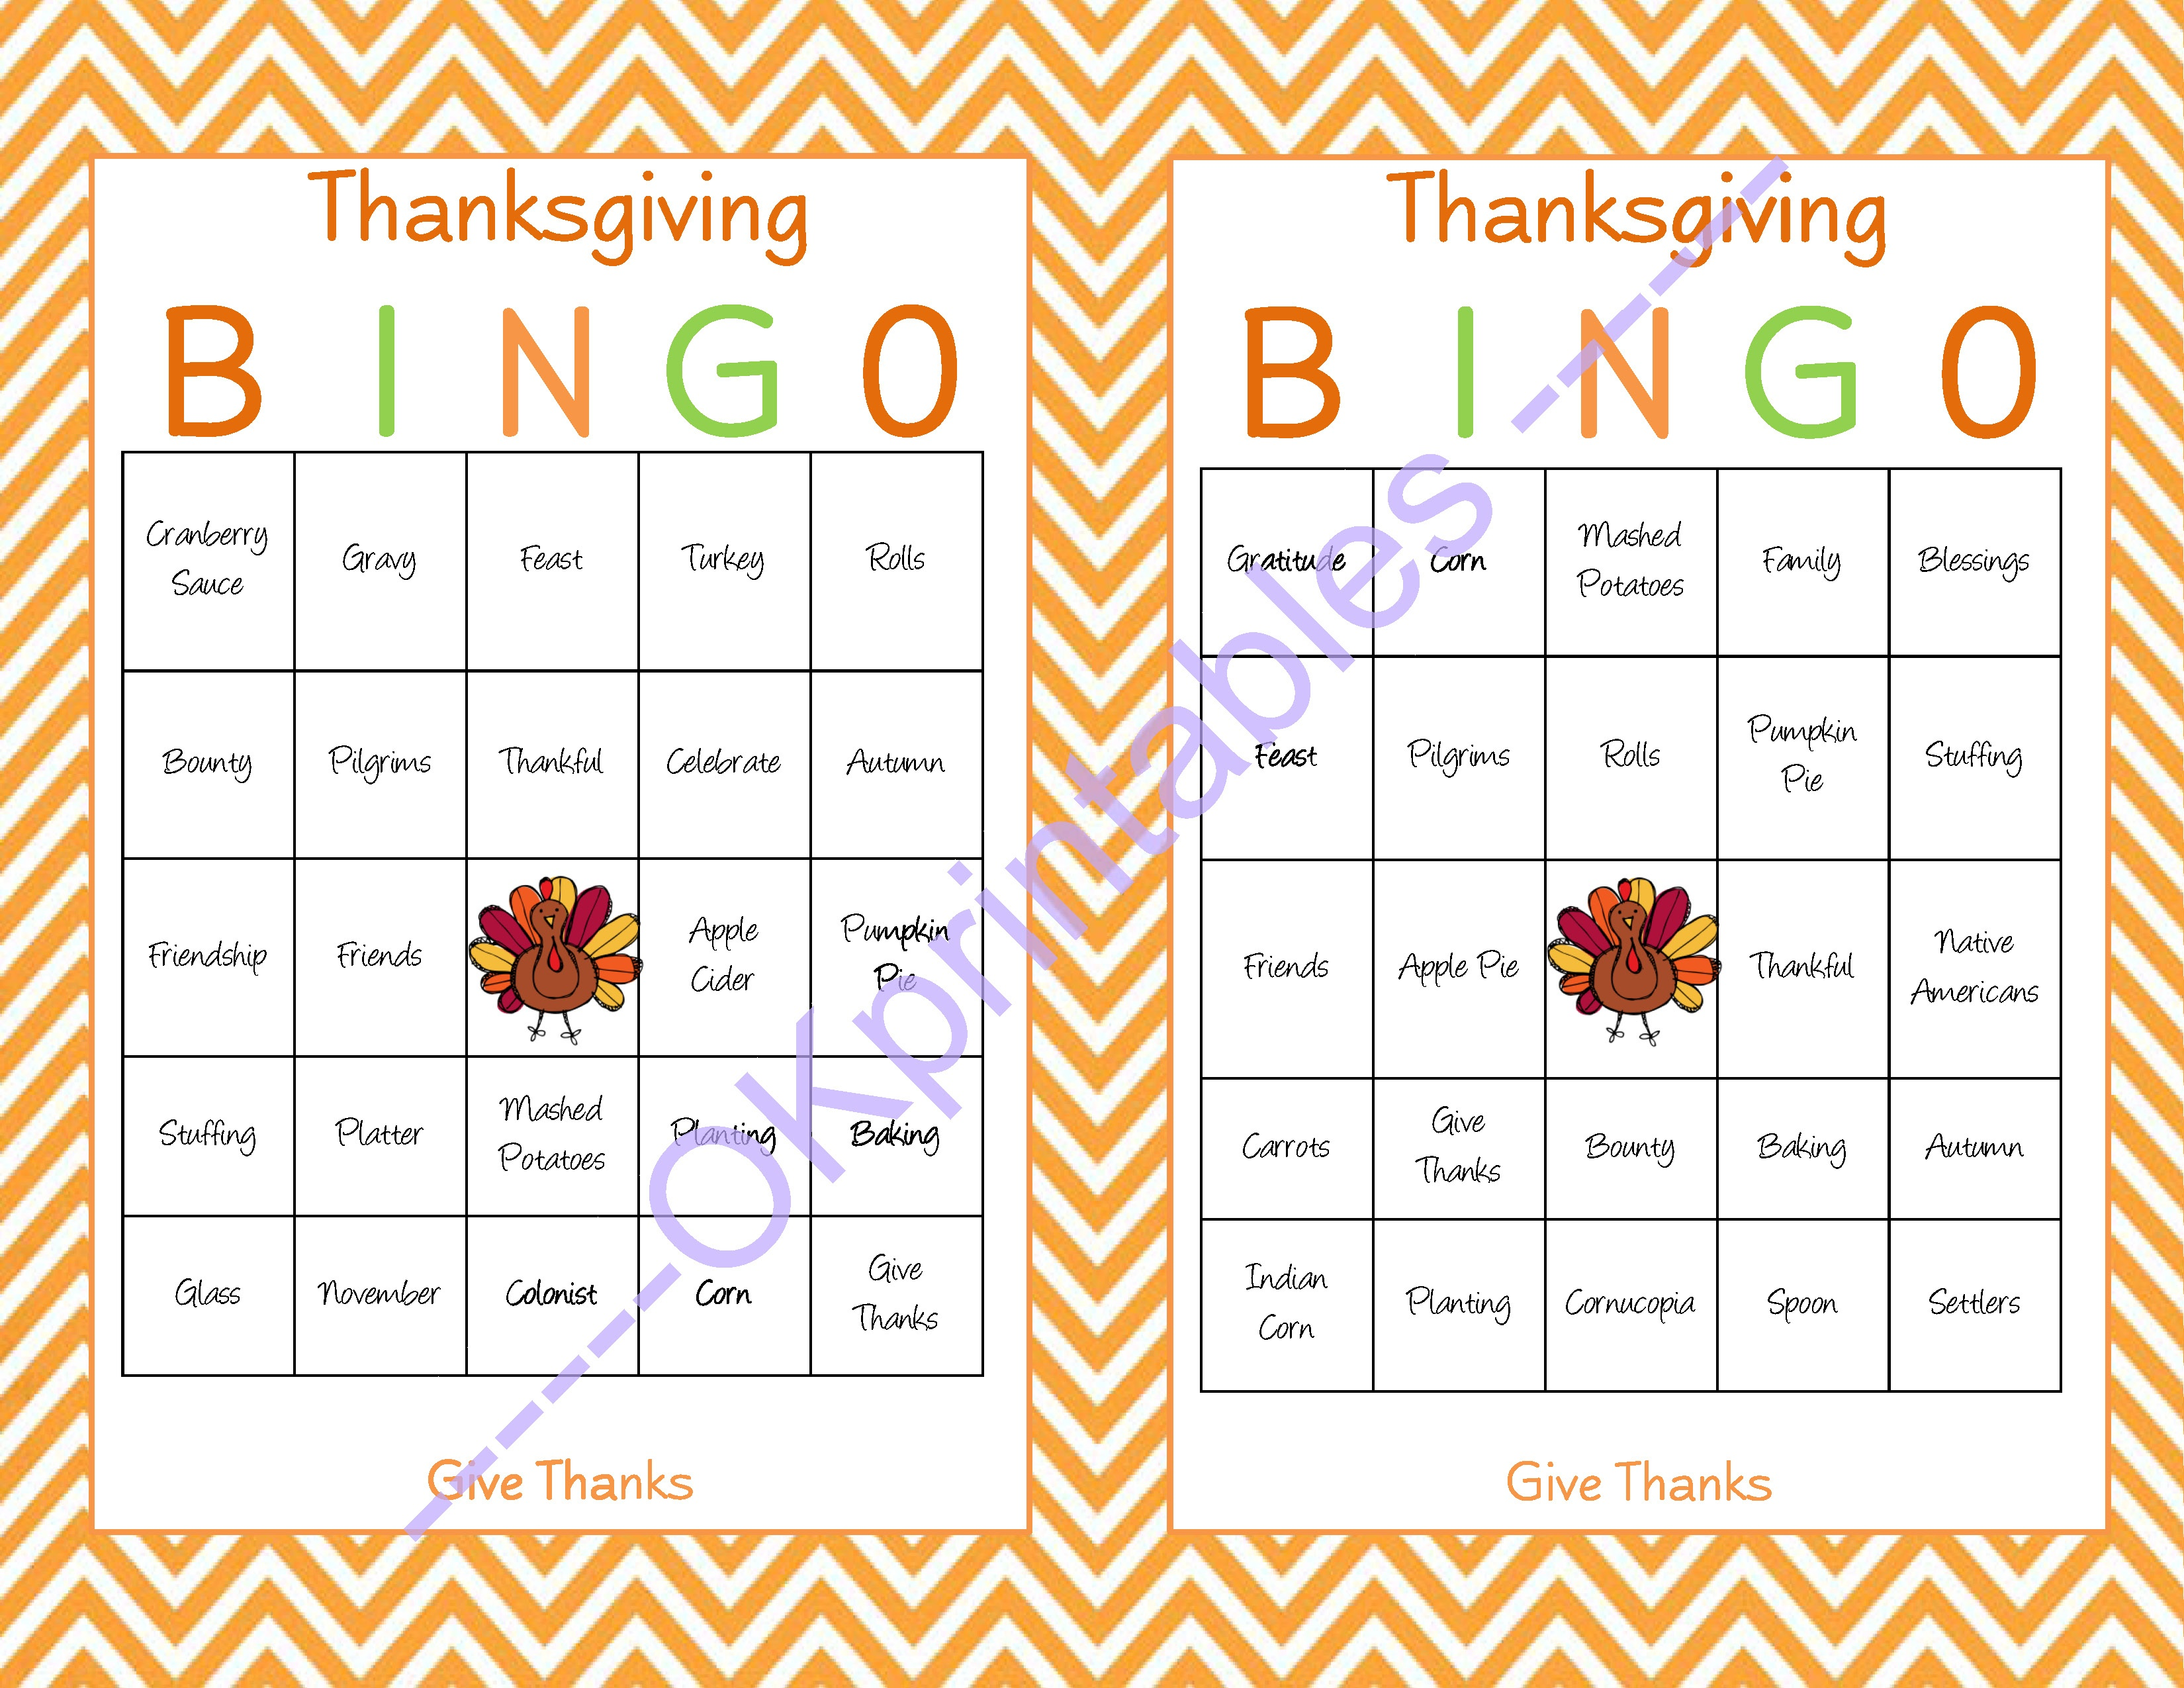 picture about Holiday Bingo Printable referred to as Thanksgiving Bingo sport - Household recreation - Getaway